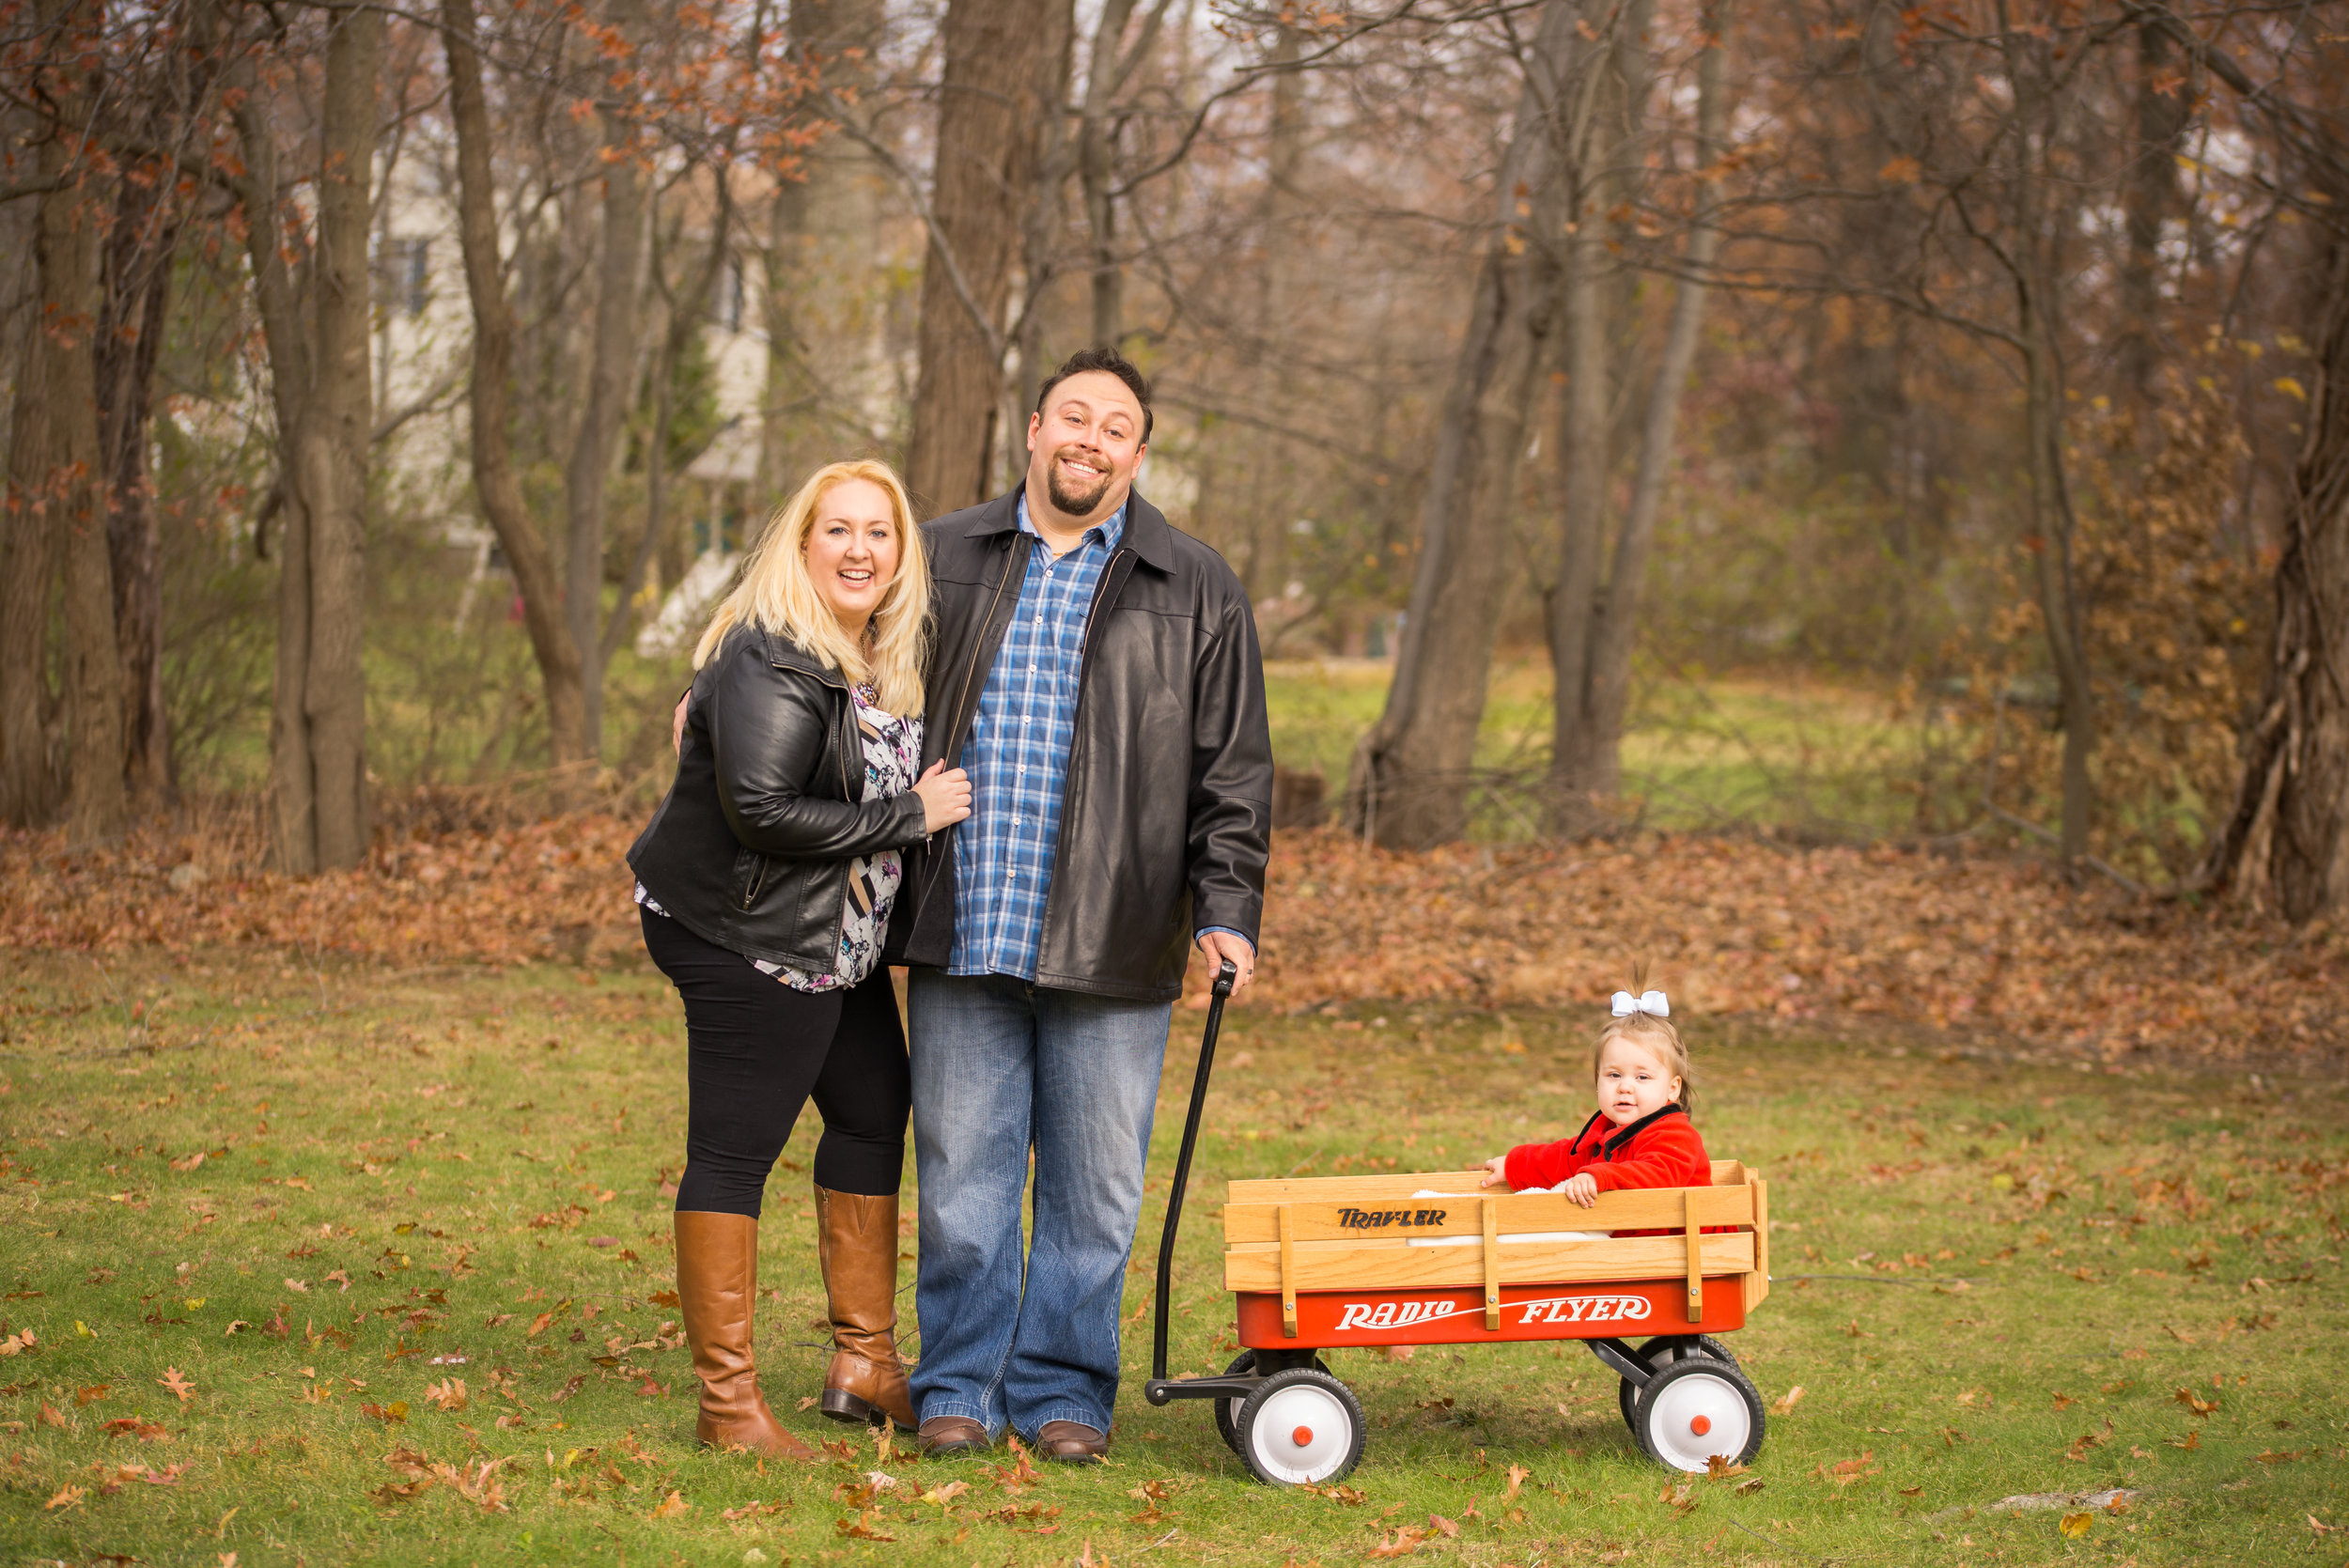 Radio flyer wagon family photo bergen county NJ fall christmas